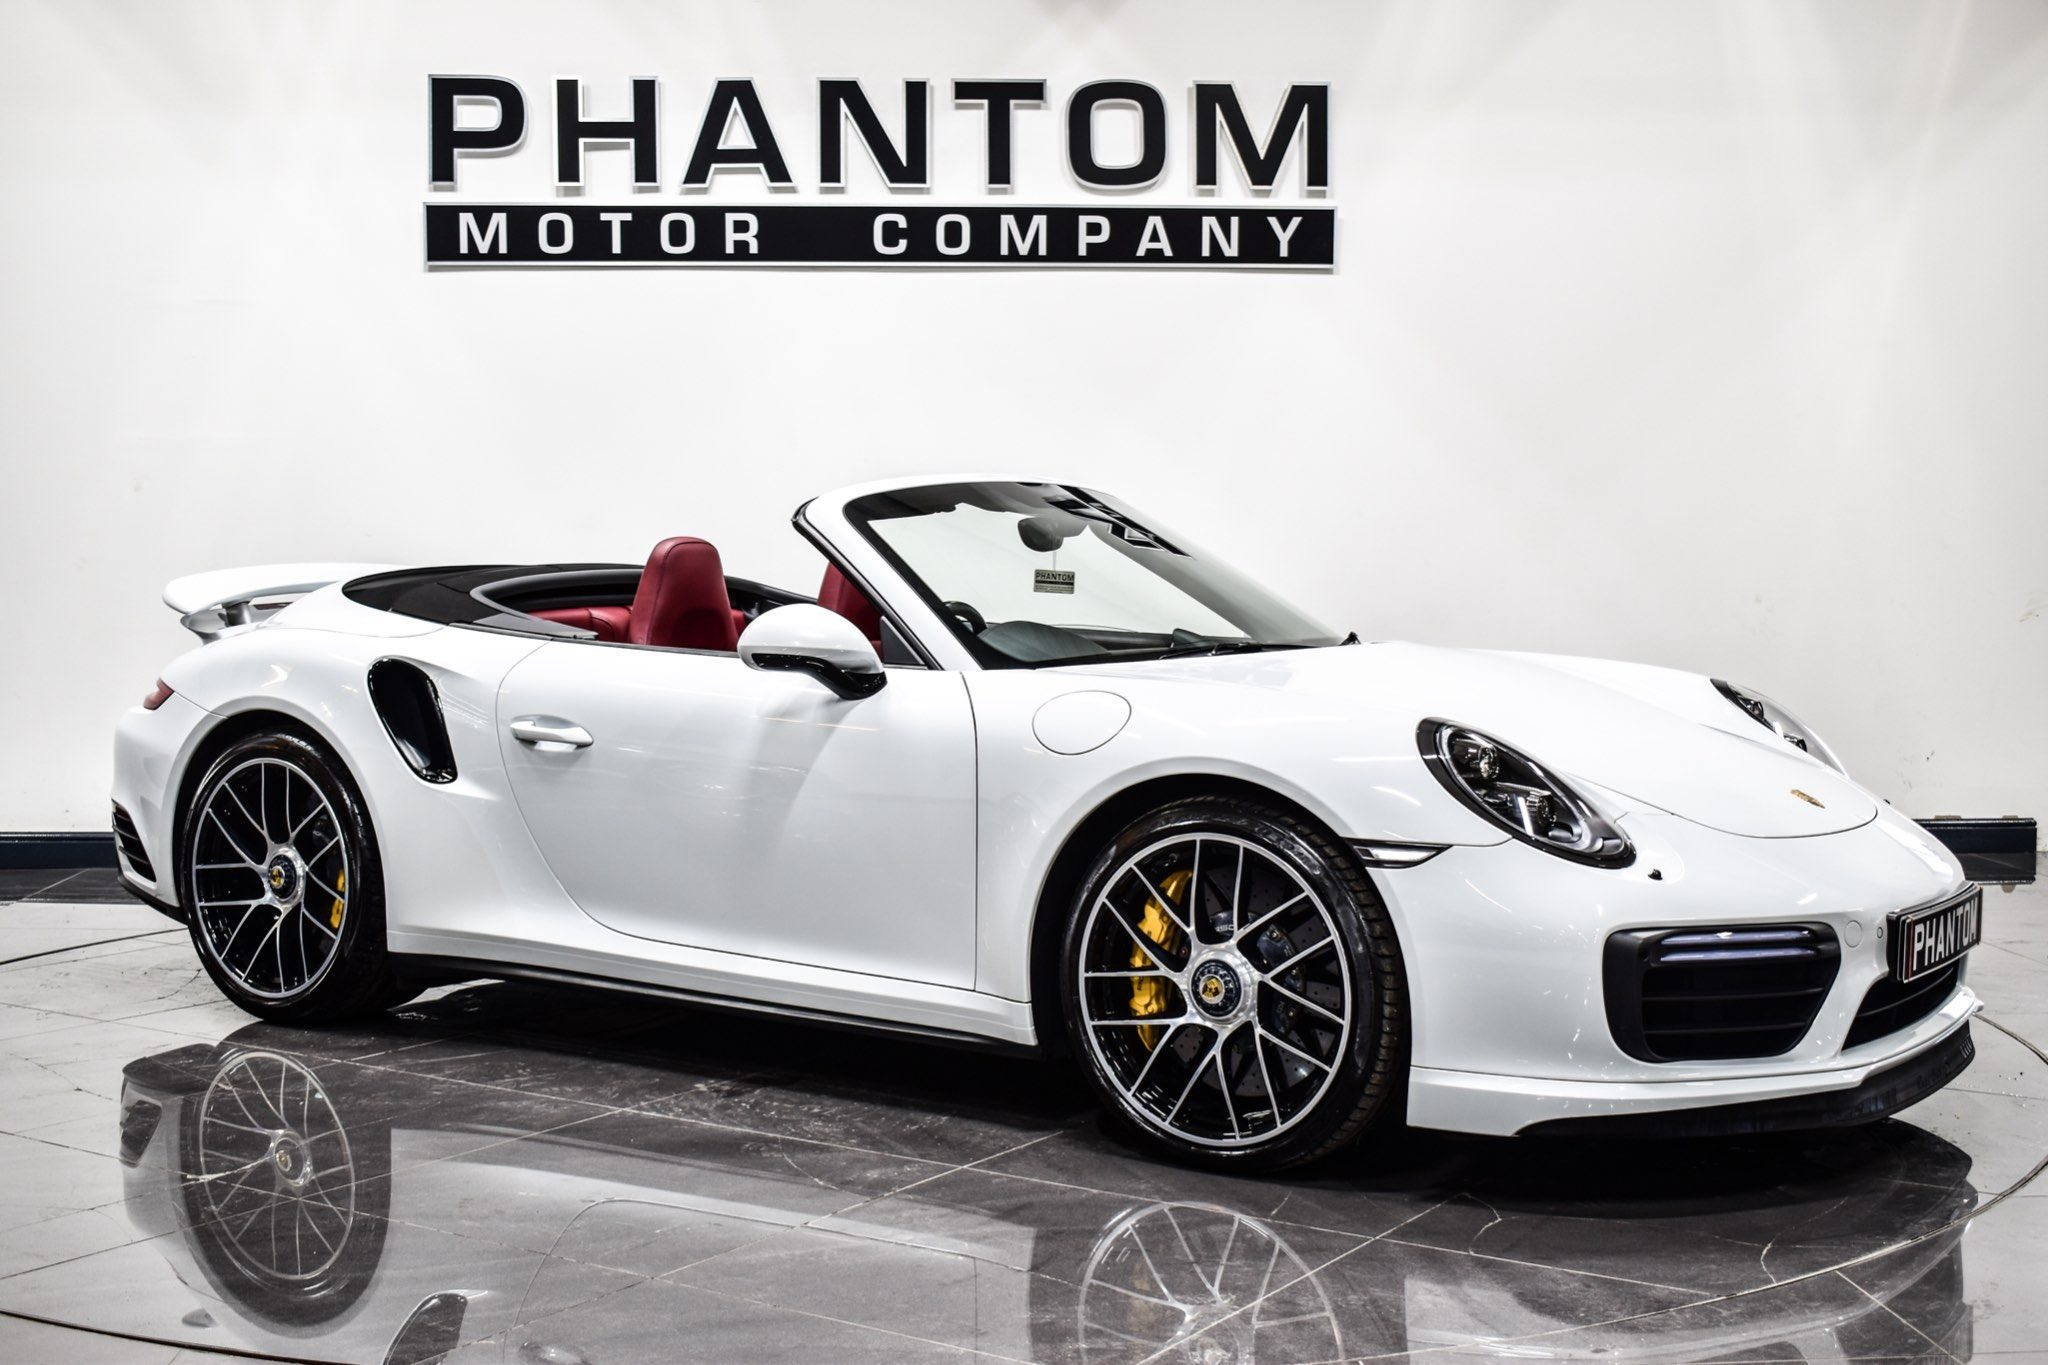 Porsche 911 Used Cars For Sale In Atherton On Auto Trader Uk